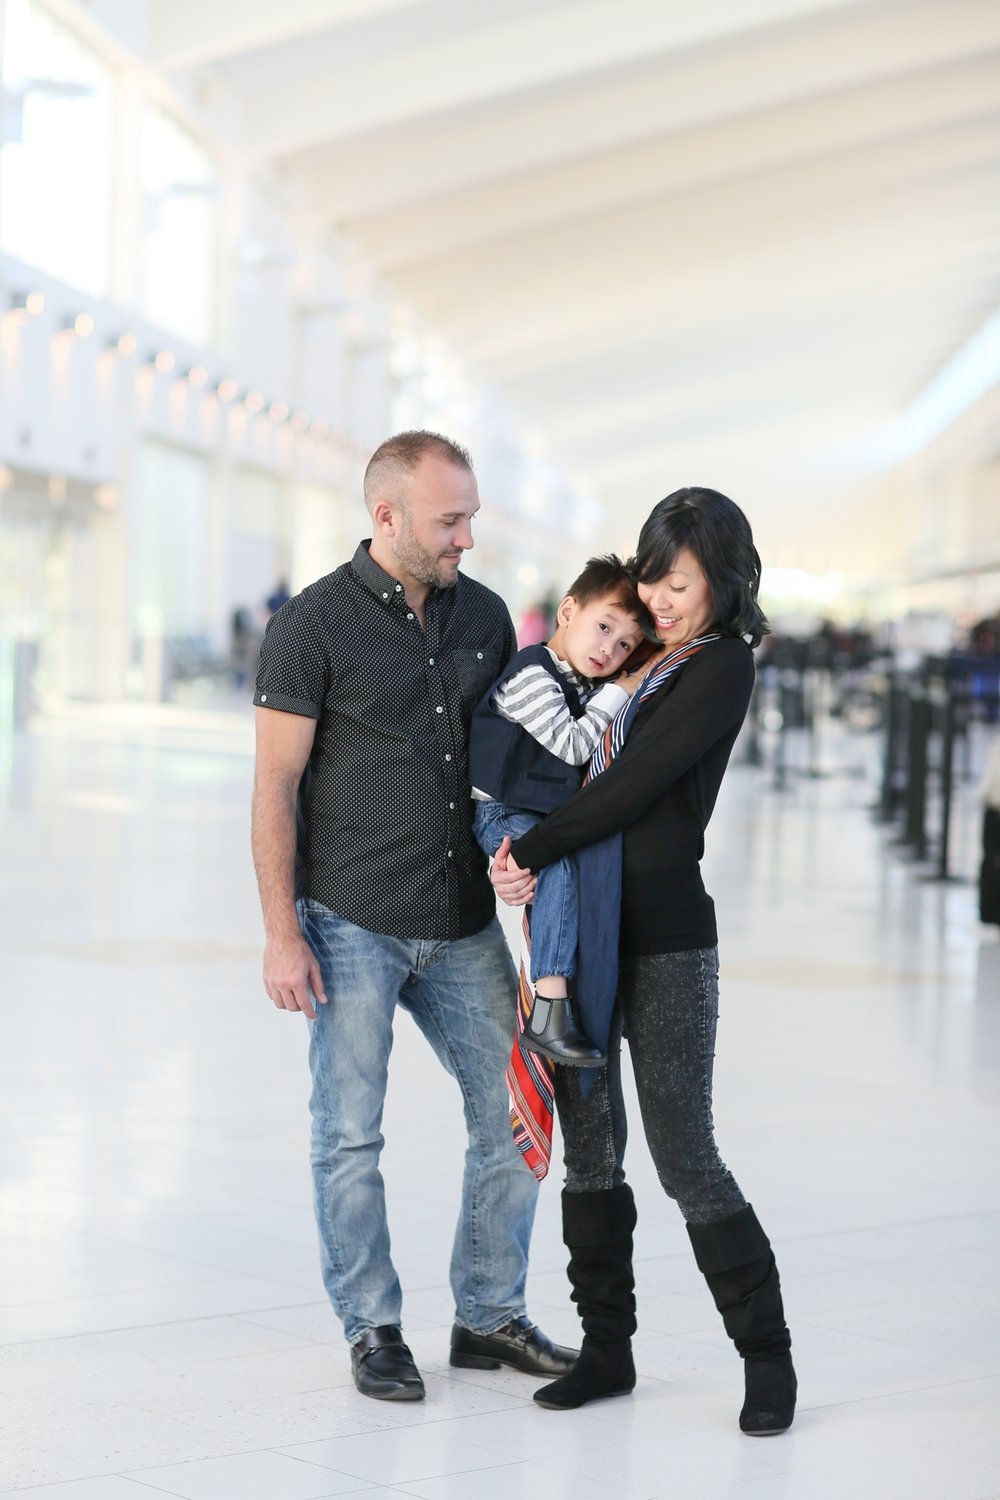 audreysnow-photography-ftmyers-rsw-family-portrait-at-the-airport_3991.jpg